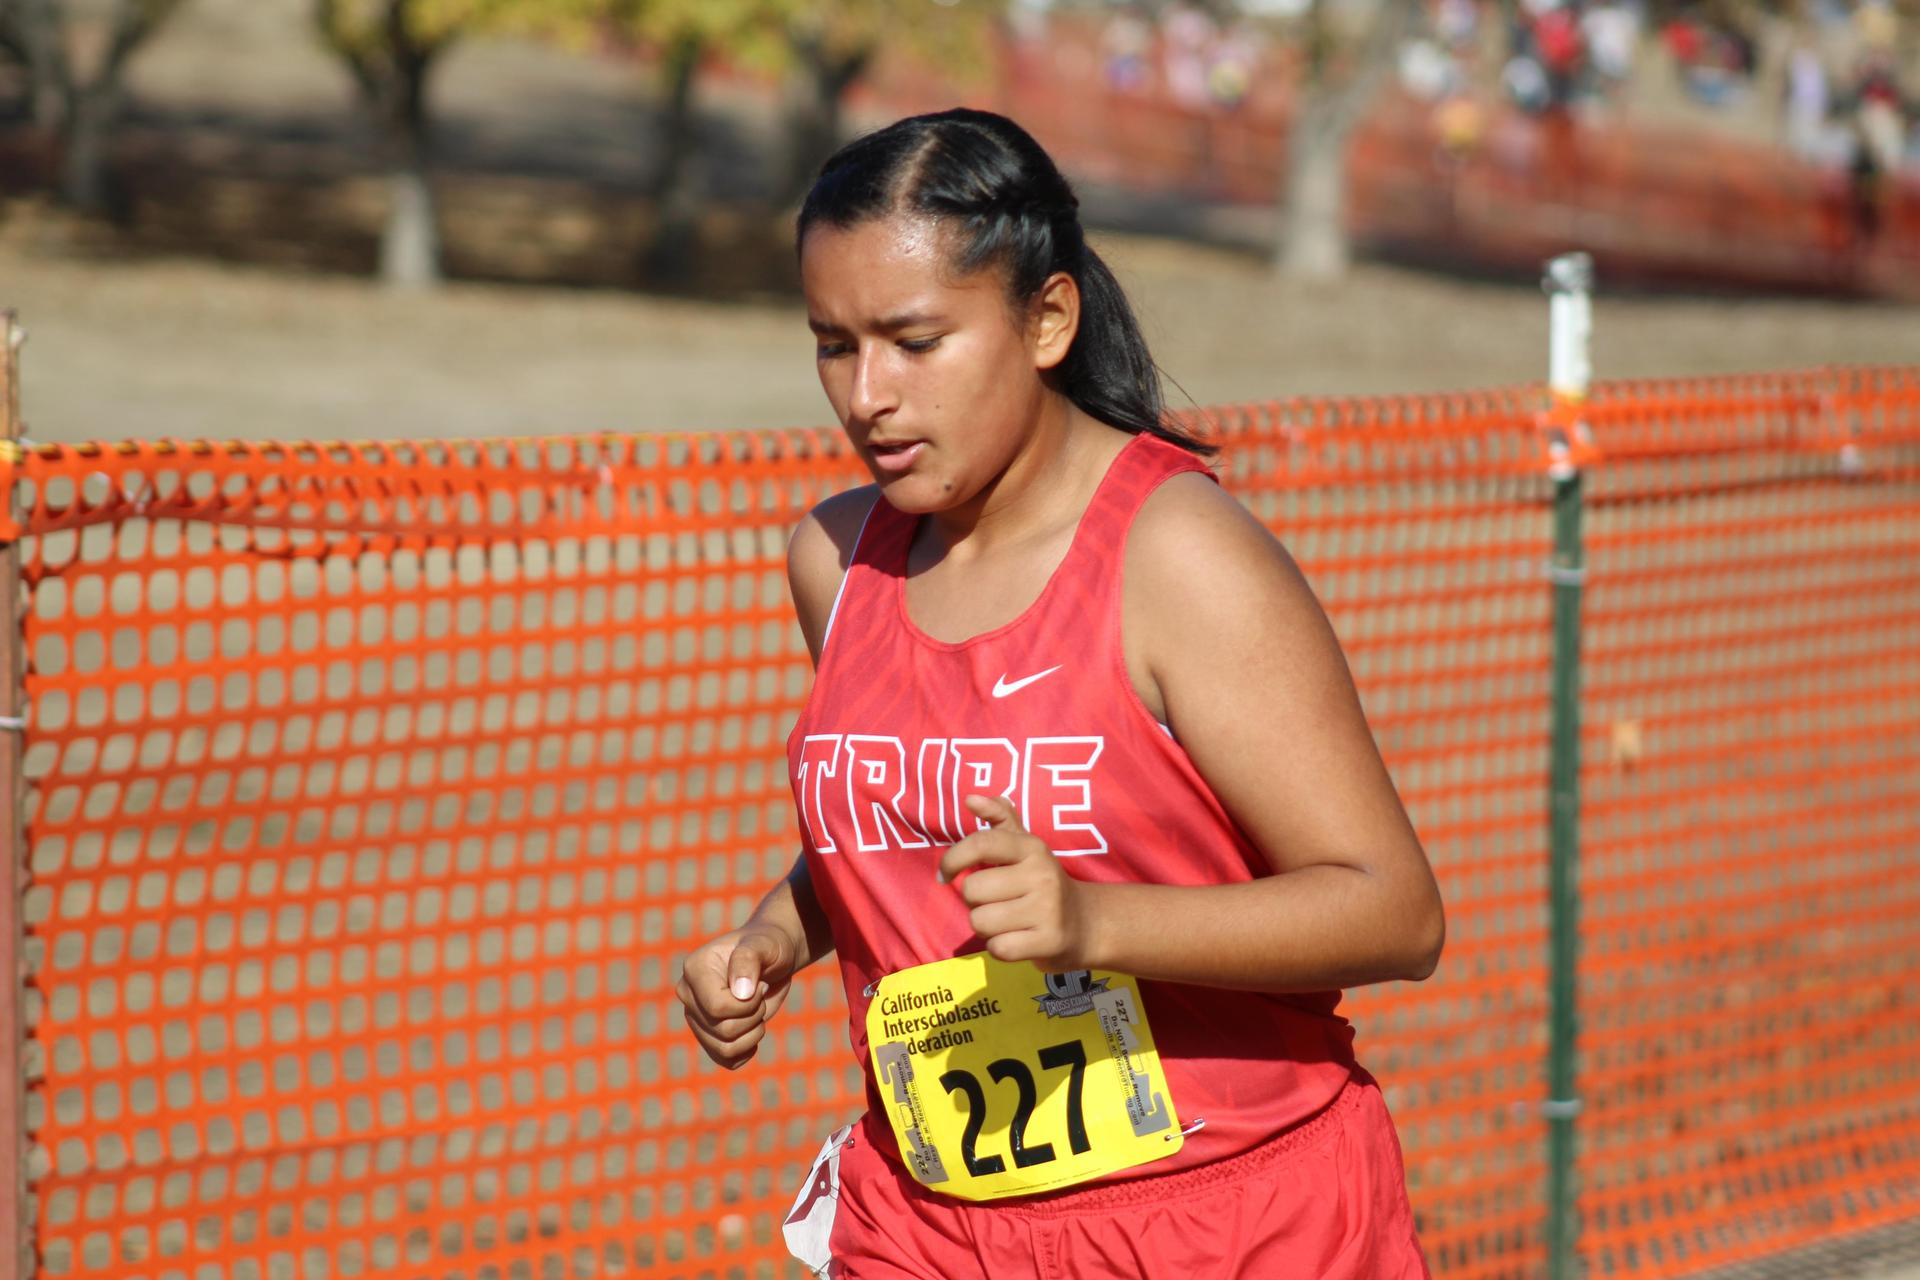 Chowchilla High School athletes running at the State Meet.Chowchilla High School athletes running at the State Meet.